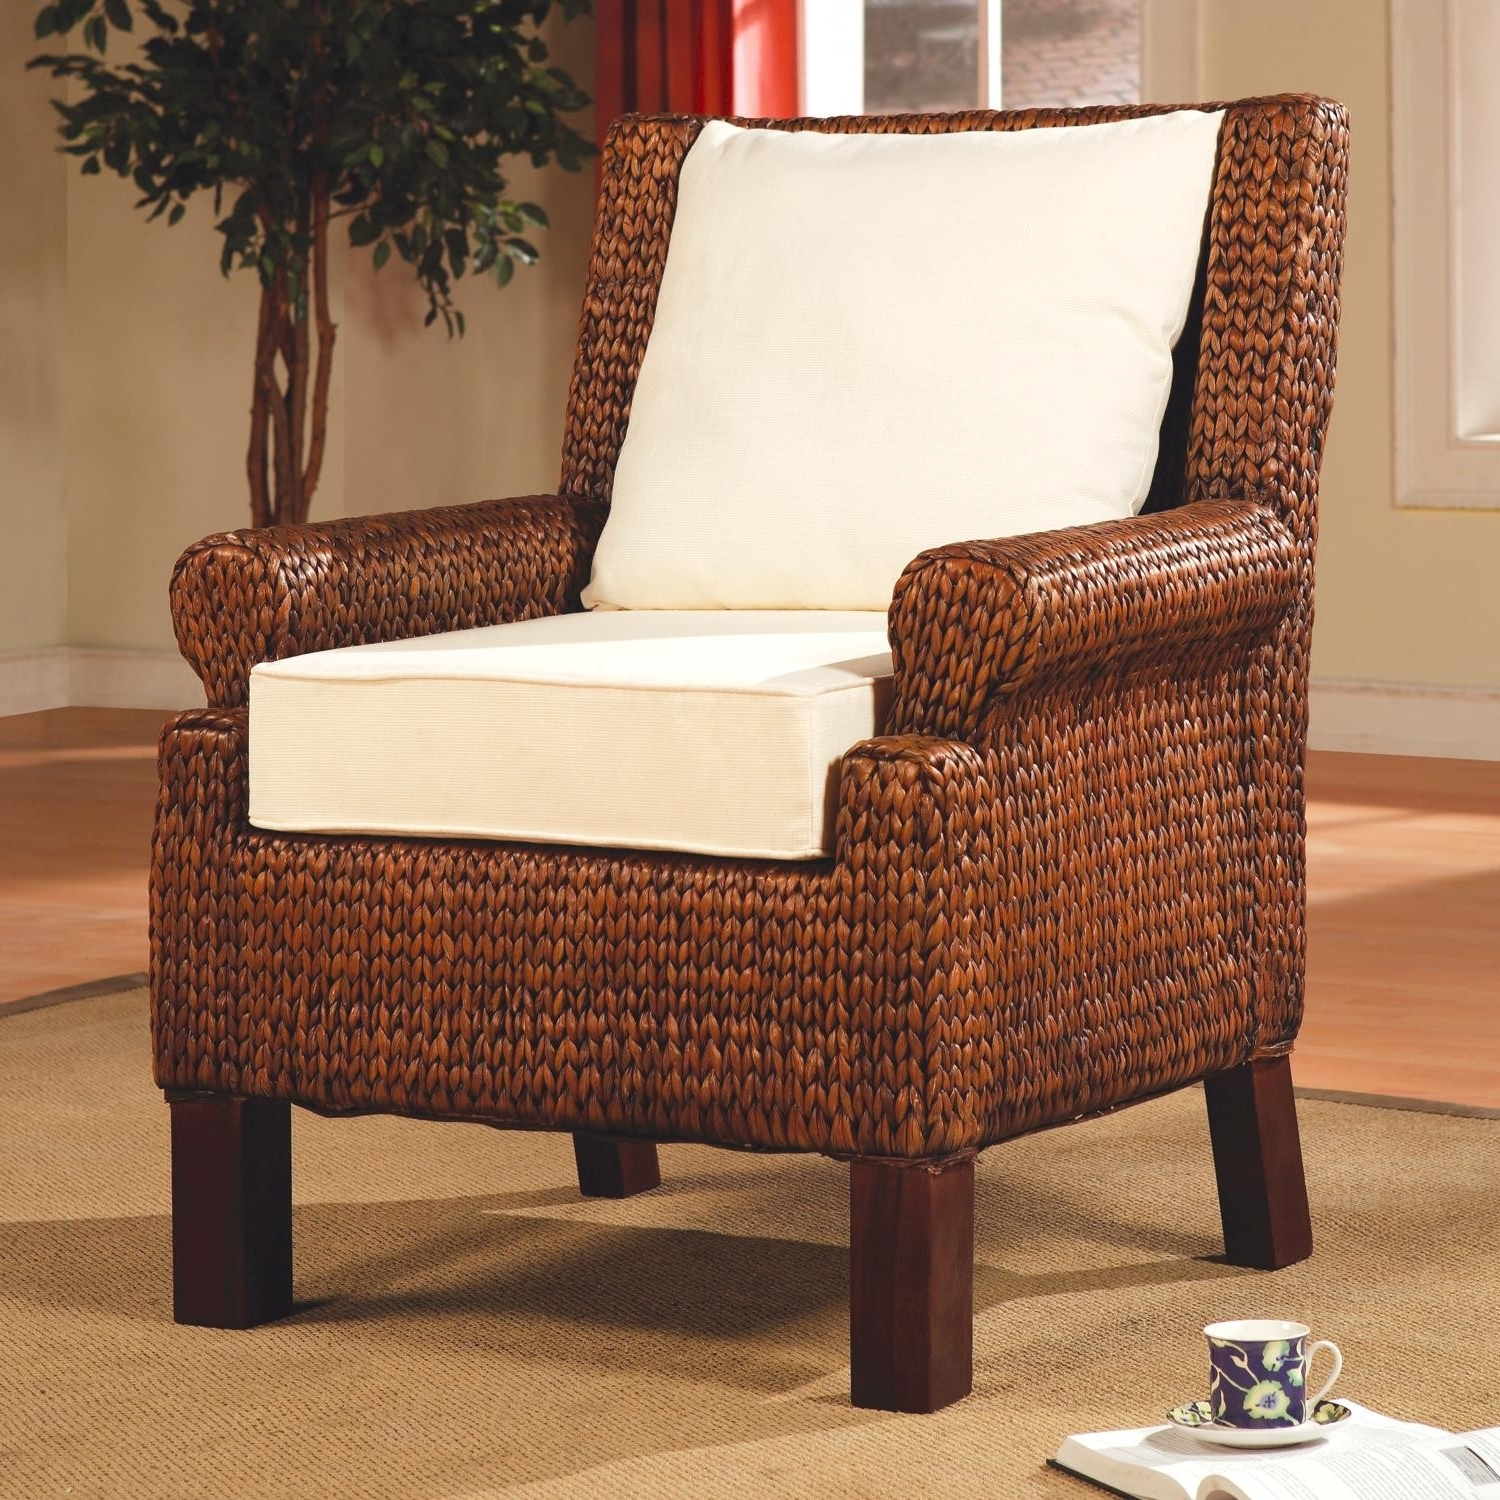 Most Up To Date Accent Seating Banana Leaf Woven Chair Lowest Price – Sofa With Banana Leaf Chairs With Cushion (View 15 of 20)